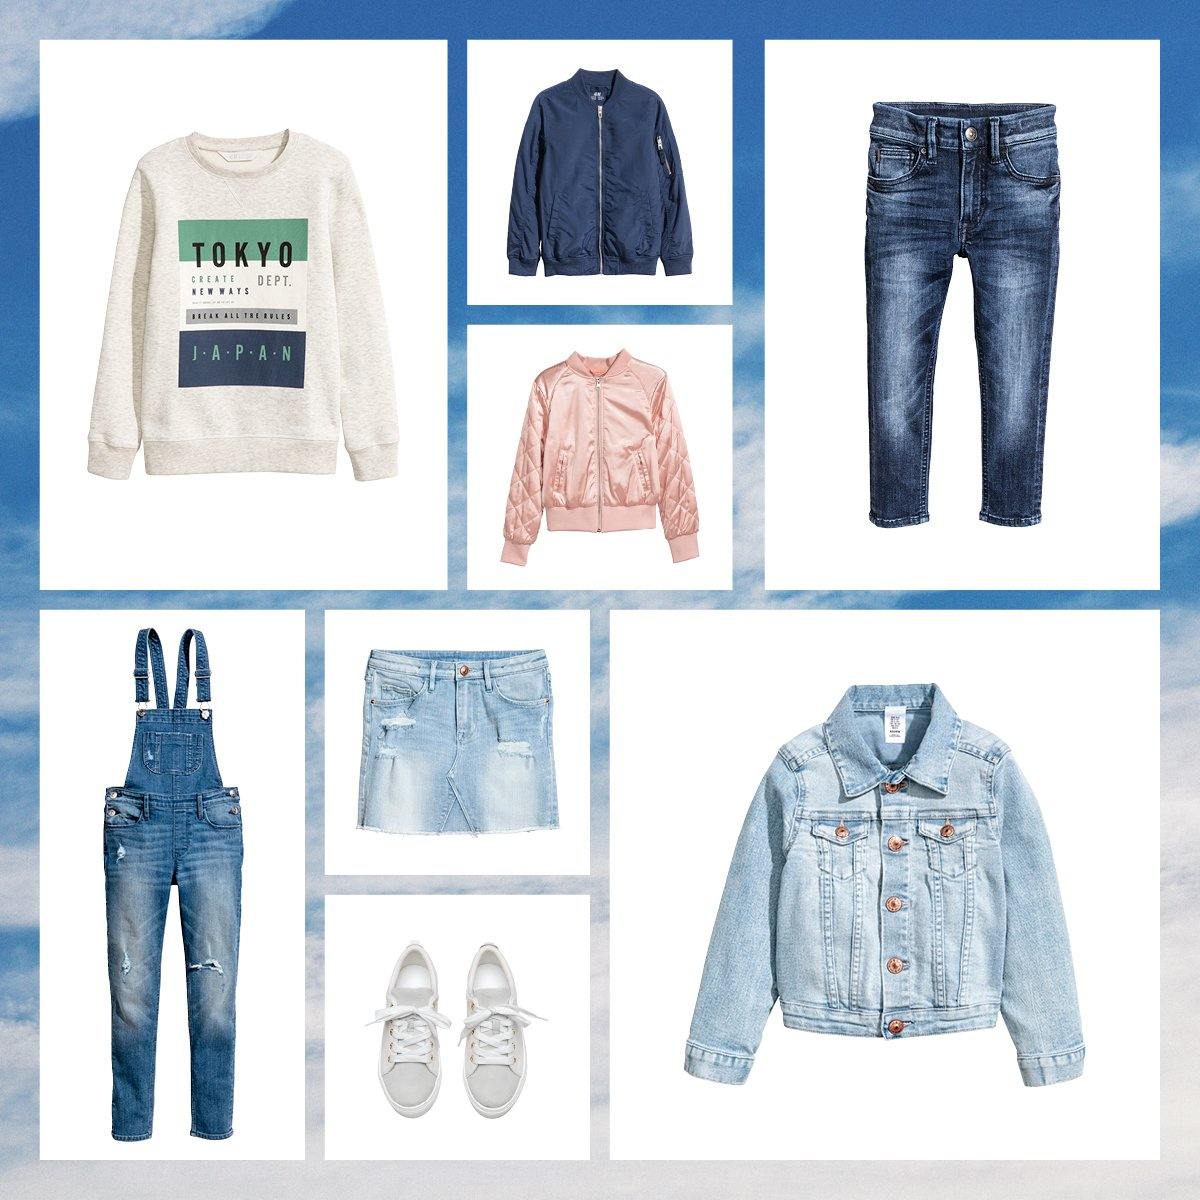 Charming prints, soft denim and pretty pastels are perfect for spring adventures!  http:// hm.info/17e8x  &nbsp;   #HMDenim #HMKids <br>http://pic.twitter.com/CRPf9oFzzz